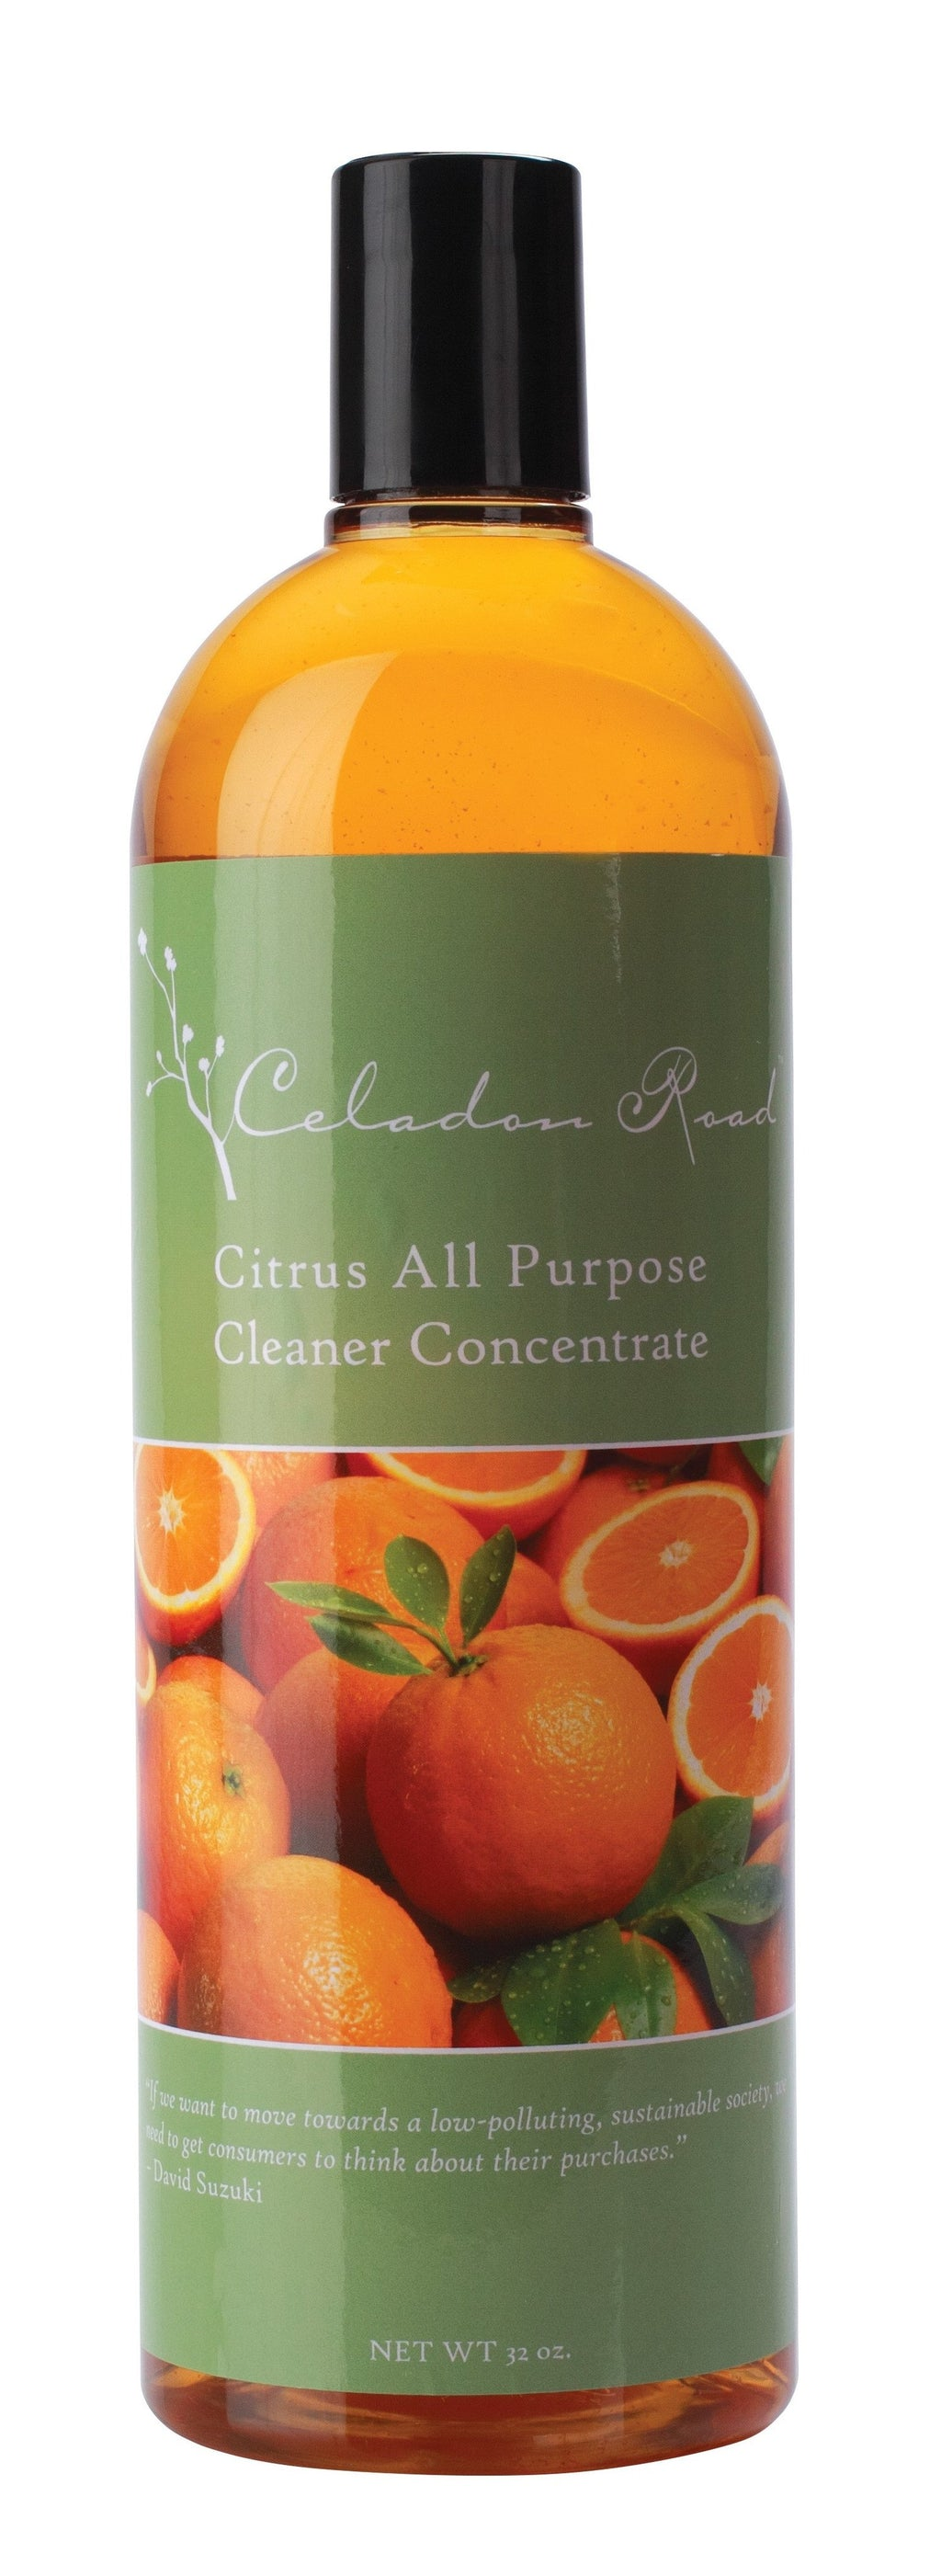 Citrus All Purpose Cleaner Concentrate- Celadon Road- www.celadonroad.com